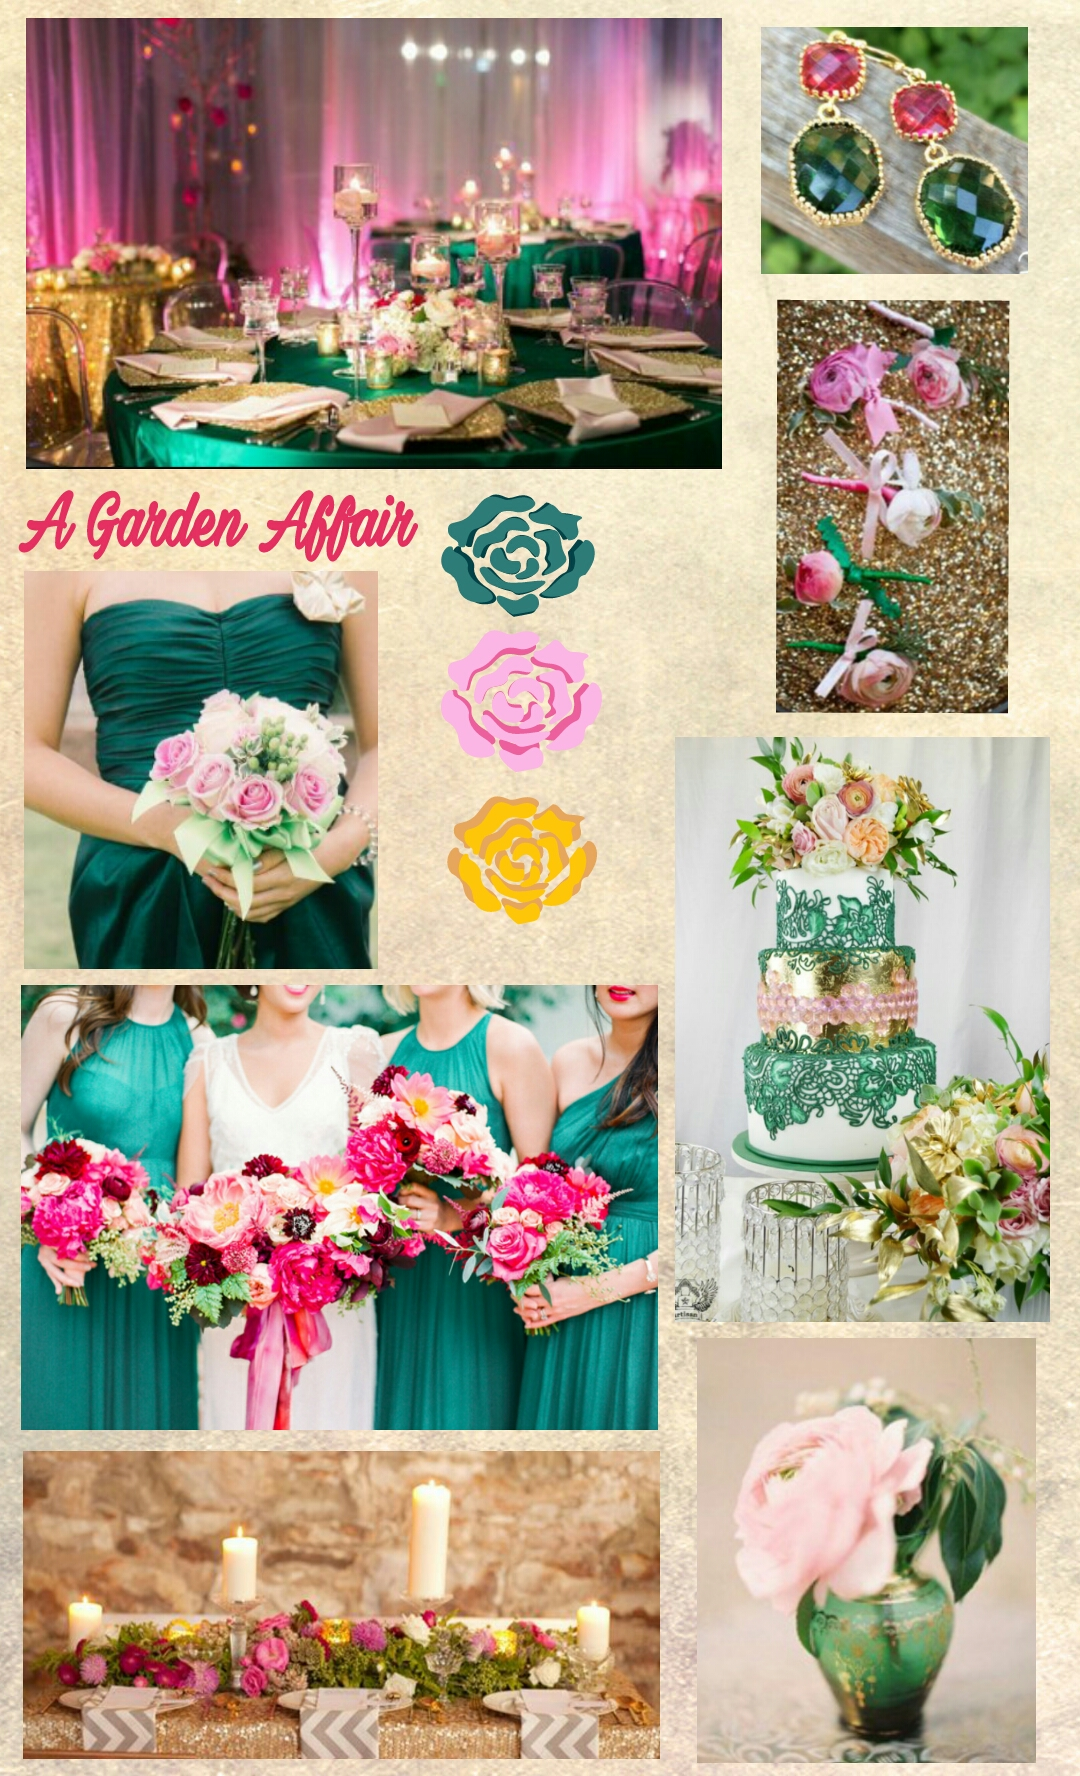 A Garden Affair, with luscious pinks and emeralds and glittering gold, will make any wedding Royally Special!